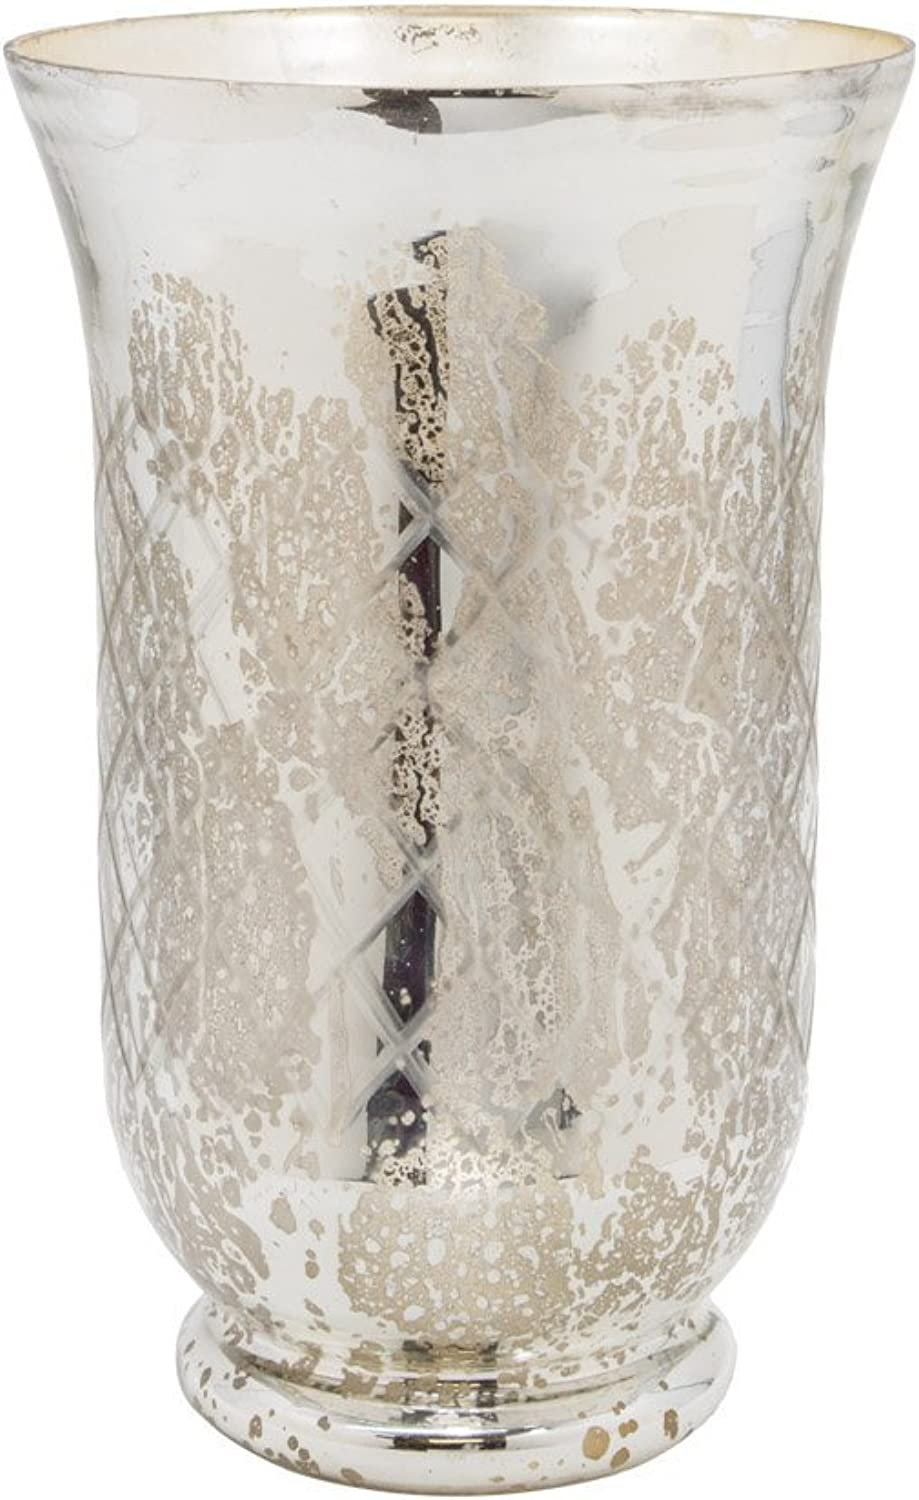 "Serene Spaces Living Antique Silver Etched Hurricane – Handmade , Vintage-Inspired Mercury Glass Vase Adds Elegance to Any Space - Use for Home Décor, Event Centerpieces and Much More, 12"" H x 7.5"" D"